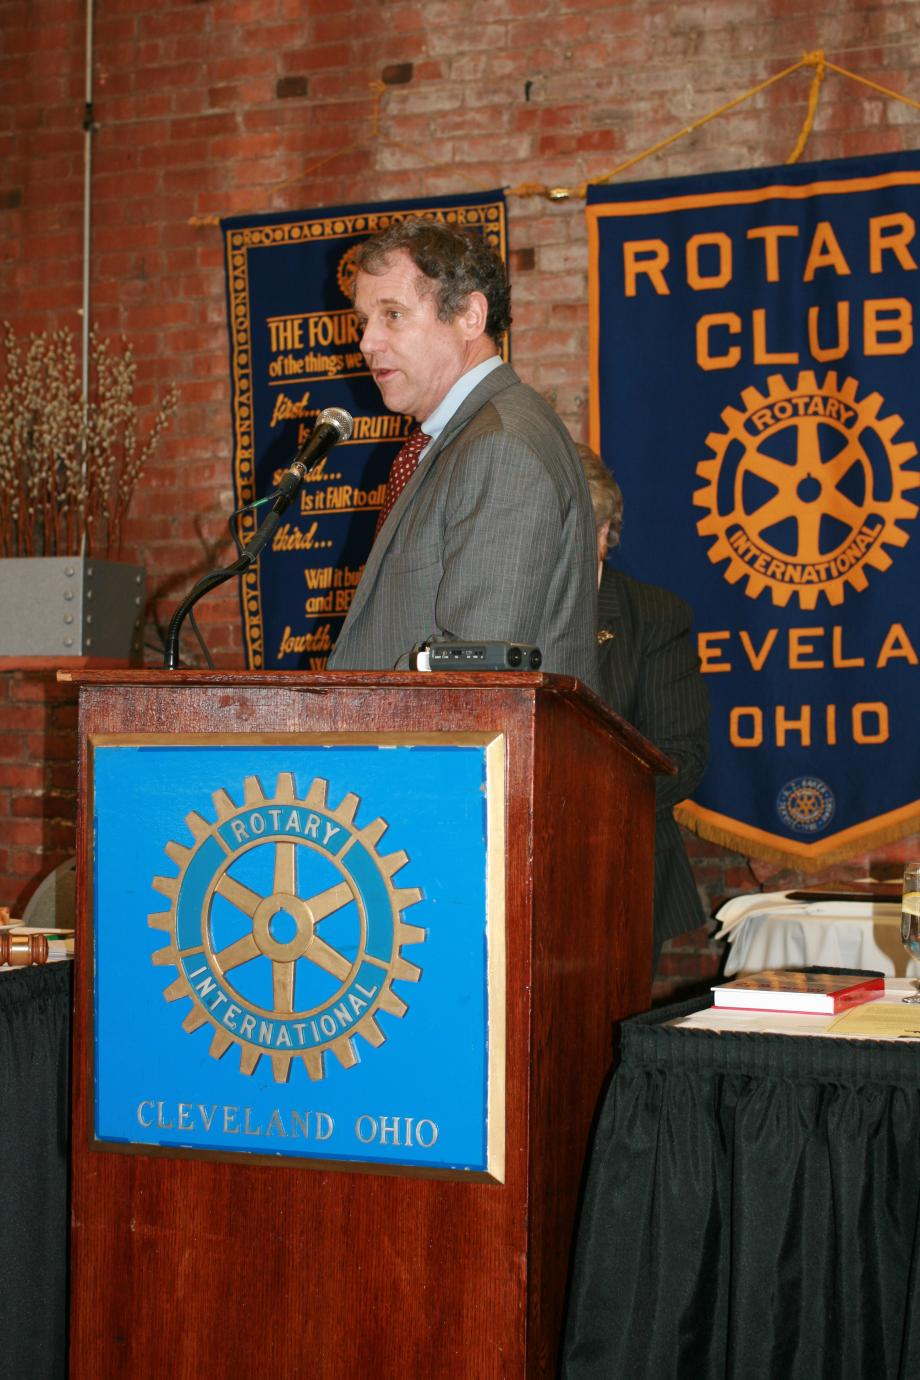 Speaking at Rotary Club of Cleveland